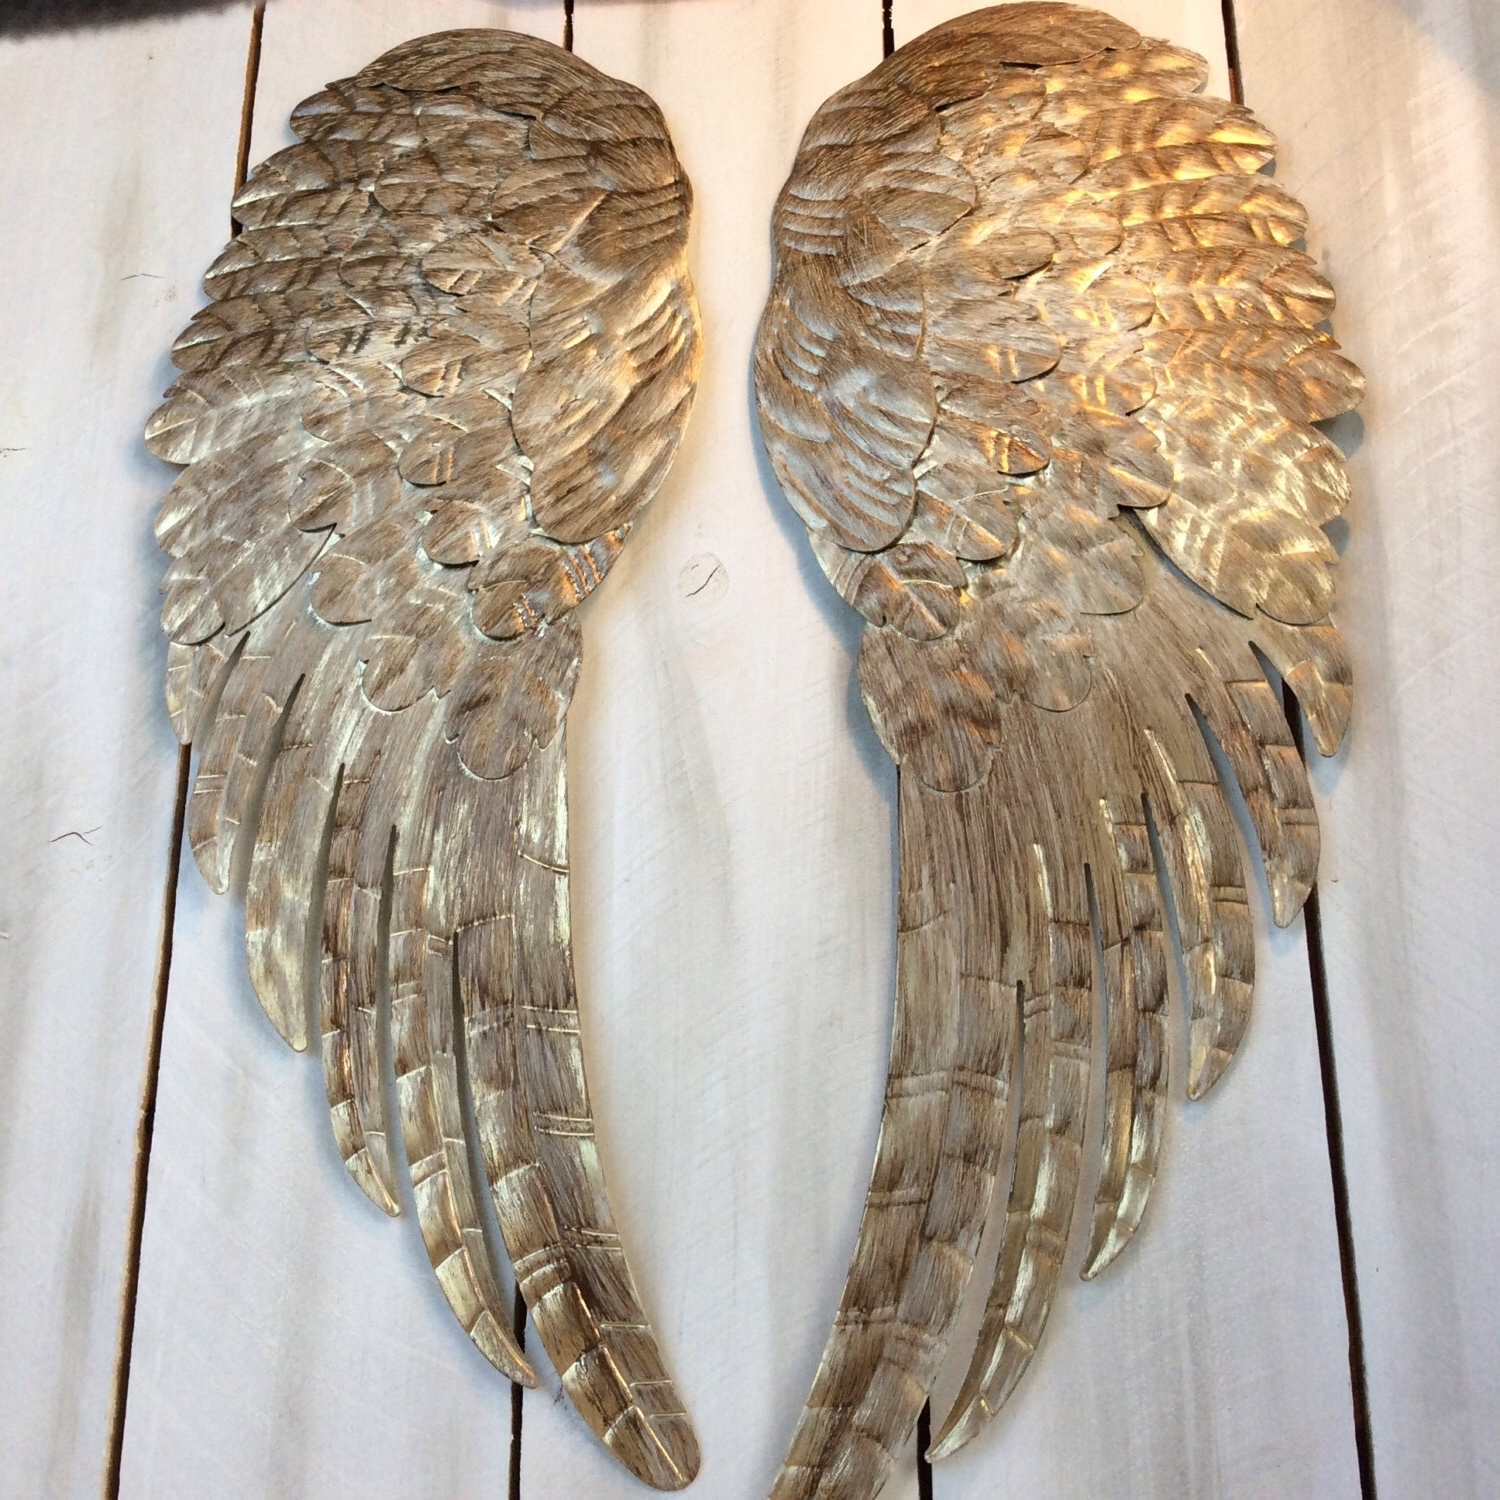 Angel Wings Wall Art Intended For Most Current Large Metal Angel Wings Wall Decor, Distressed Gold, Ivory (View 3 of 15)